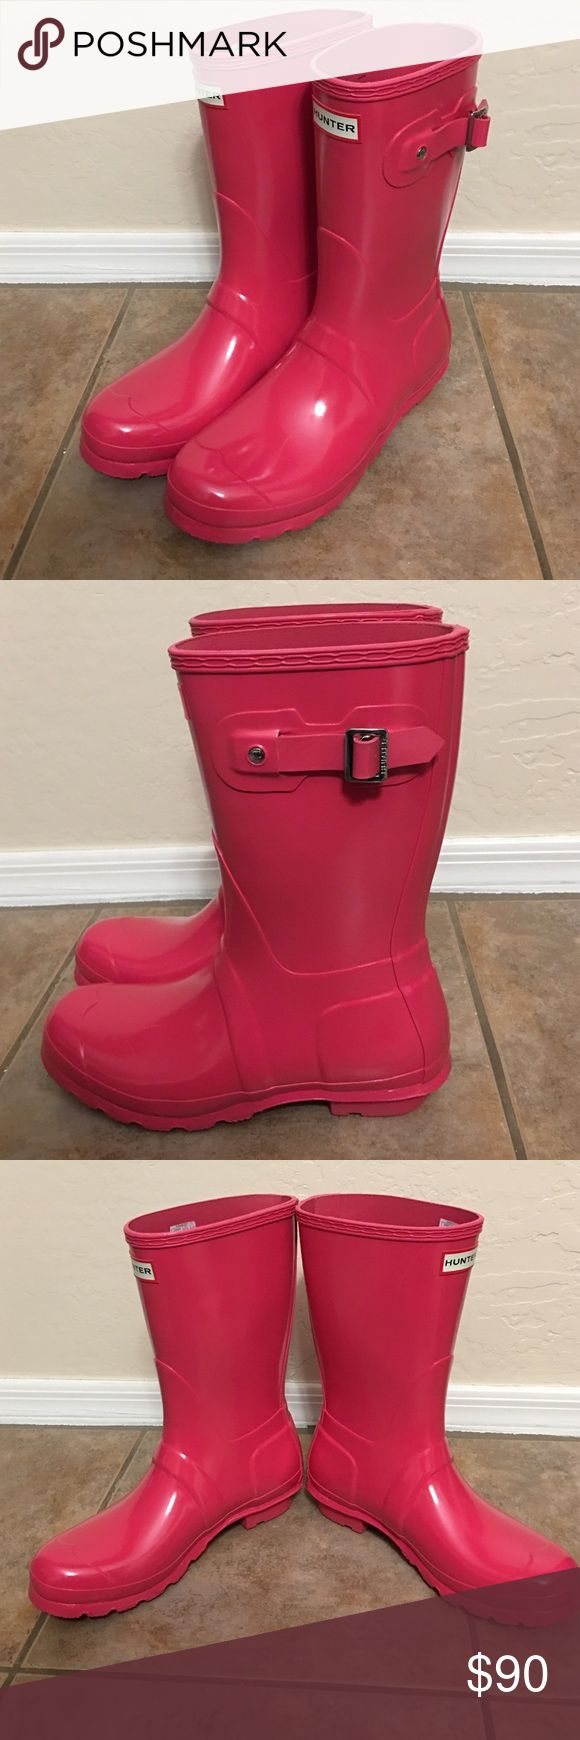 Hunter Original Short Rain Boot Wellies sz 8 No Box, No Trades, Freshly cleaned and gently used, shoes little wear on bottom soles Hunter Boots Shoes Winter & Rain Boots